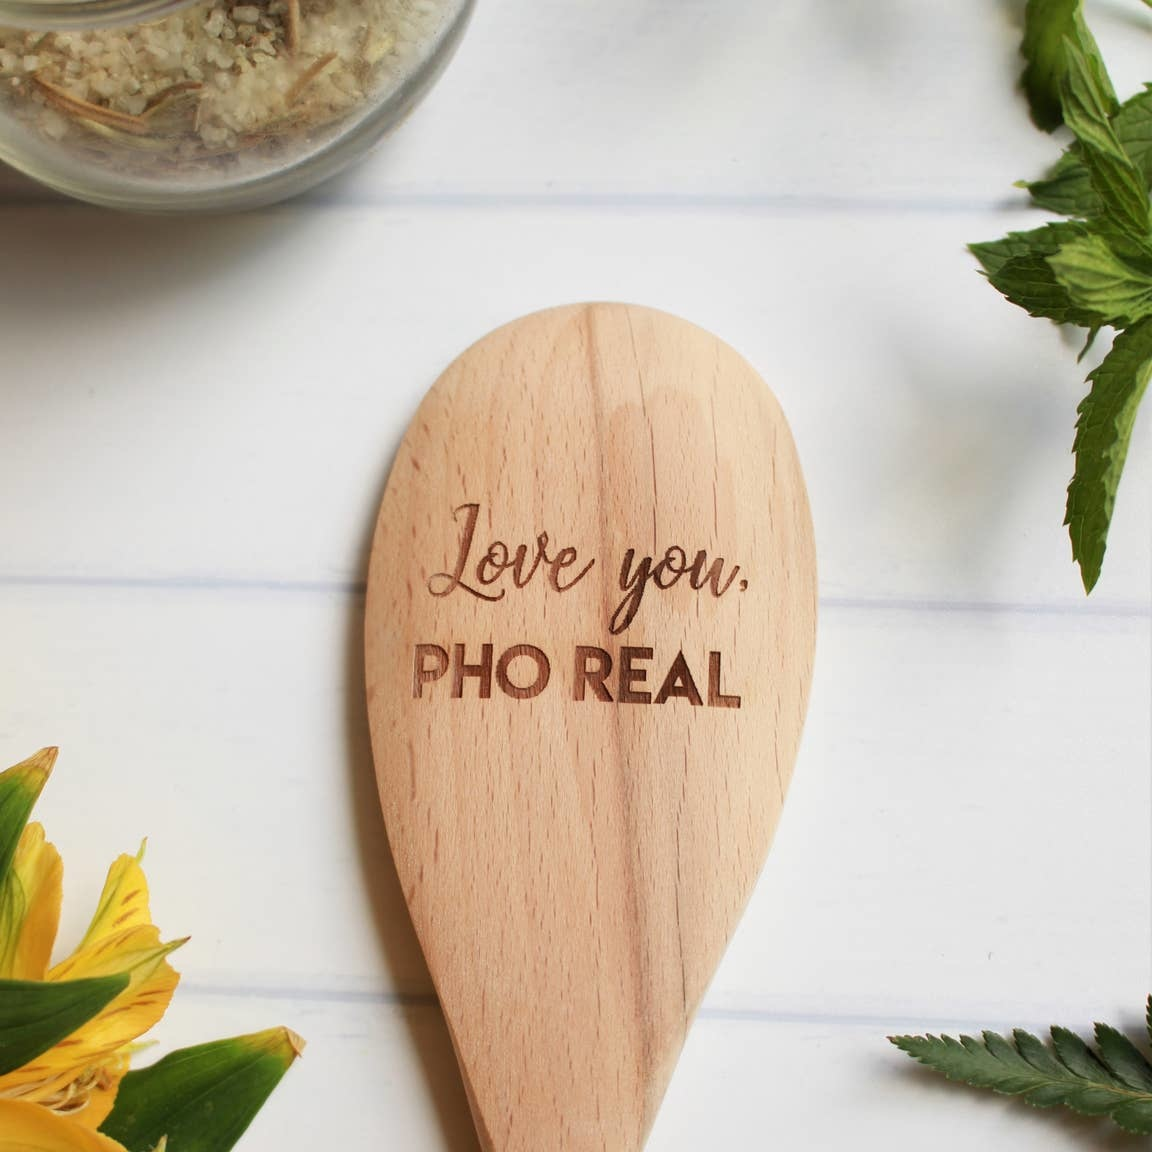 North To South Designs Love You, Pho Real Engraved Wooden Spoon